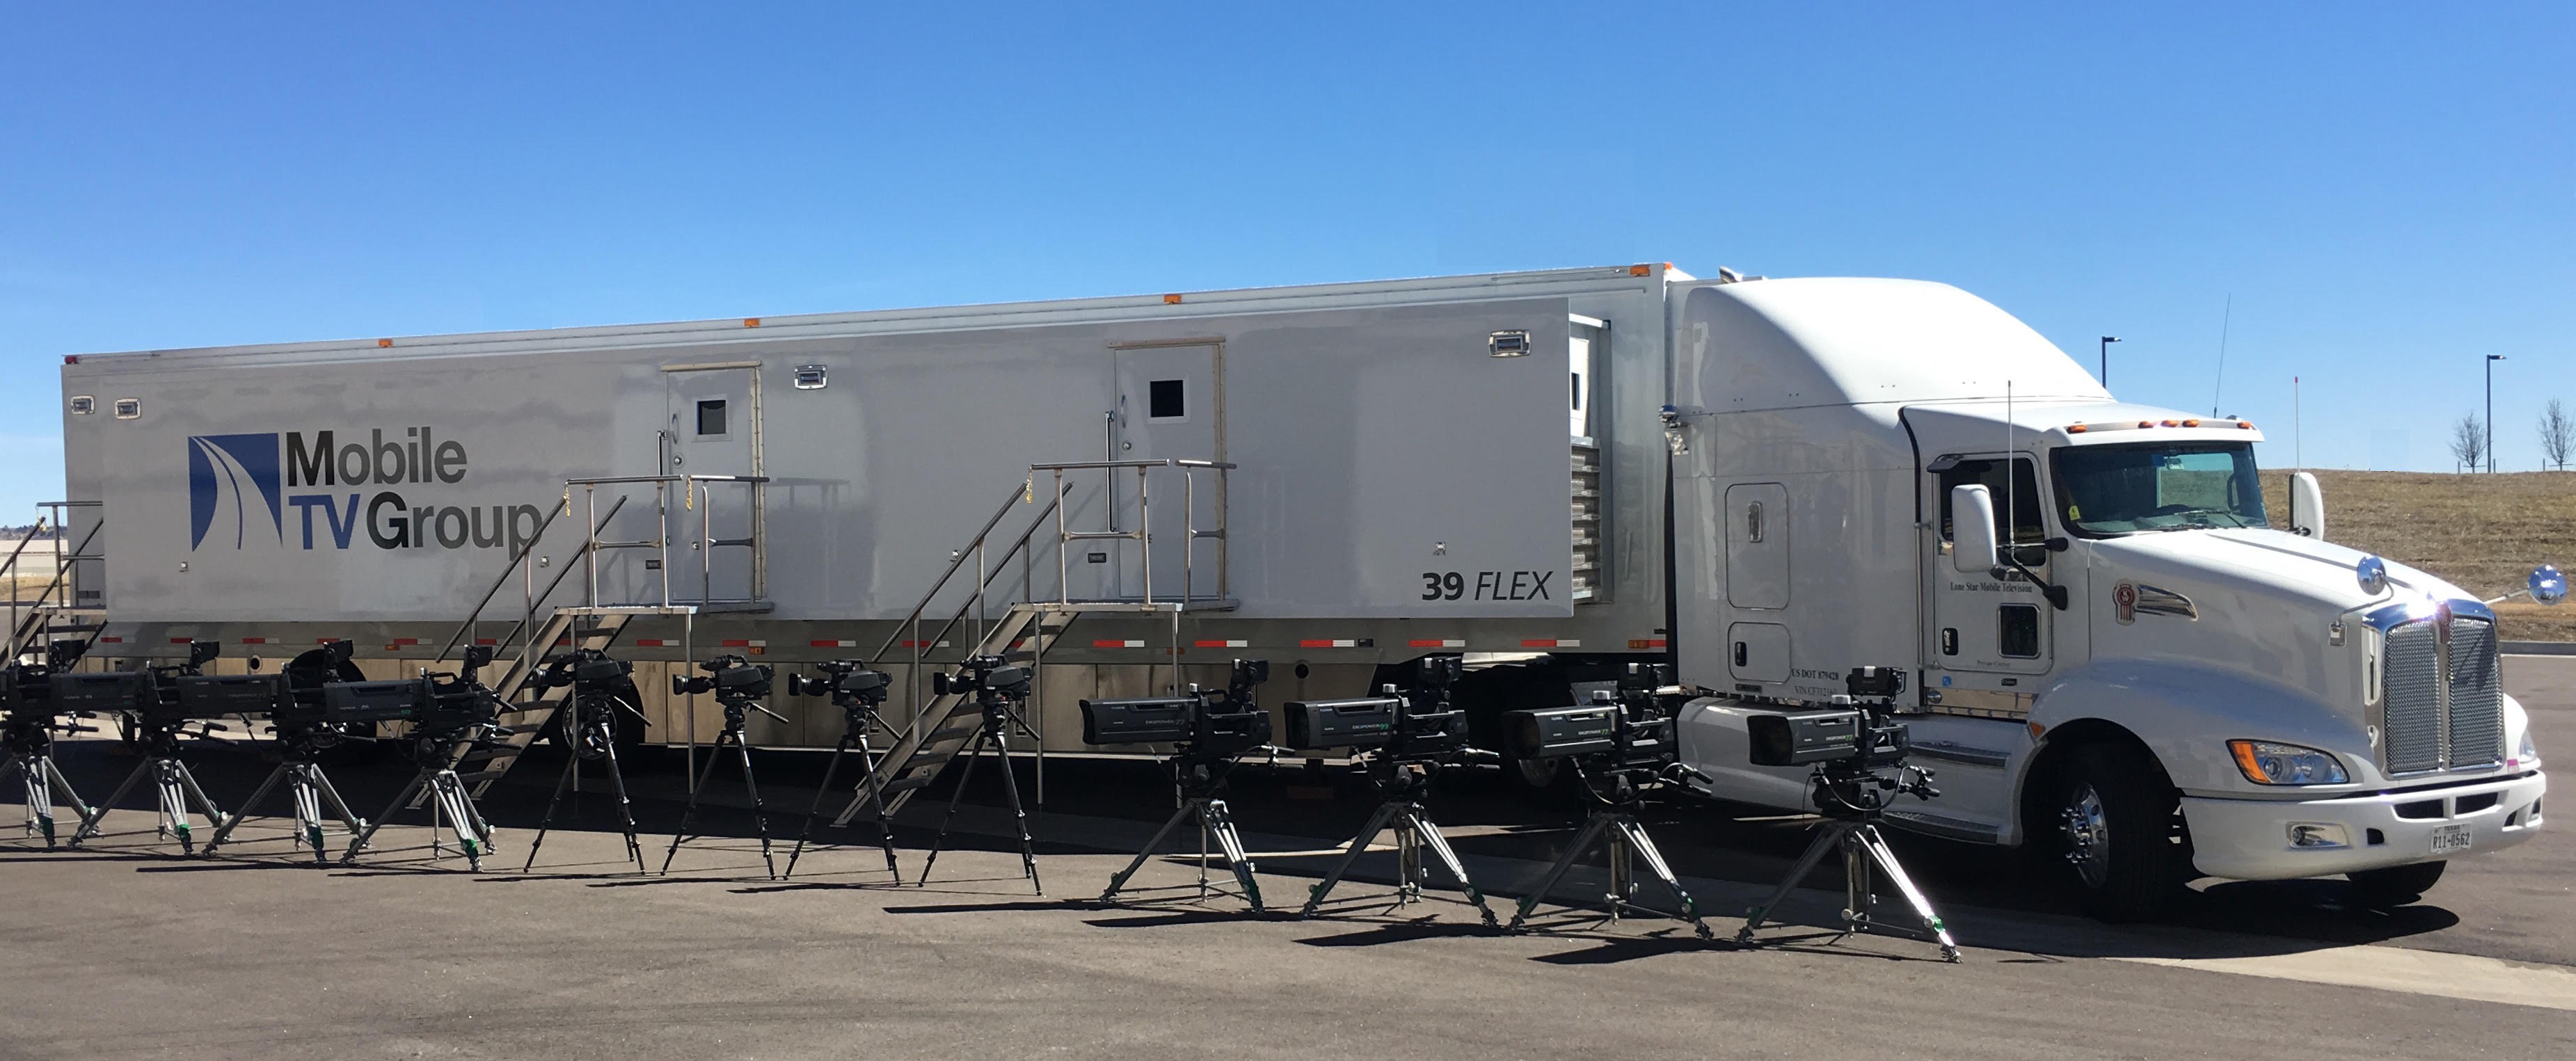 Mobile TV Group's 39FLEX 4K truck will be utilized for CBS Sports' 4K production.